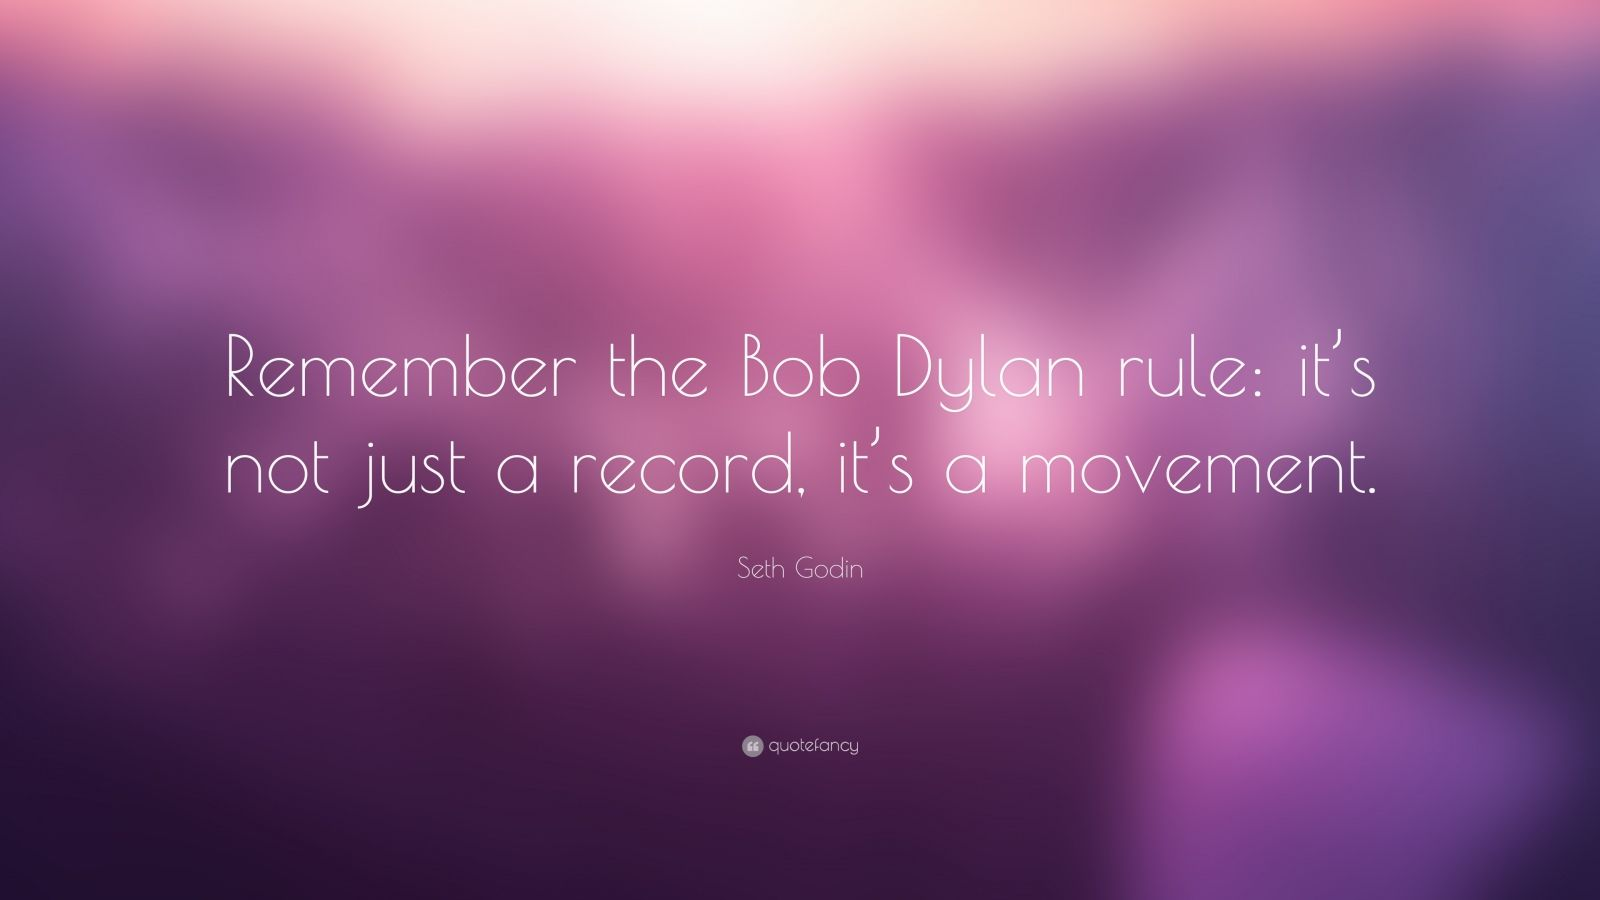 """Seth Godin Quote: """"Remember the Bob Dylan rule: it's not just a record, it's a movement."""""""